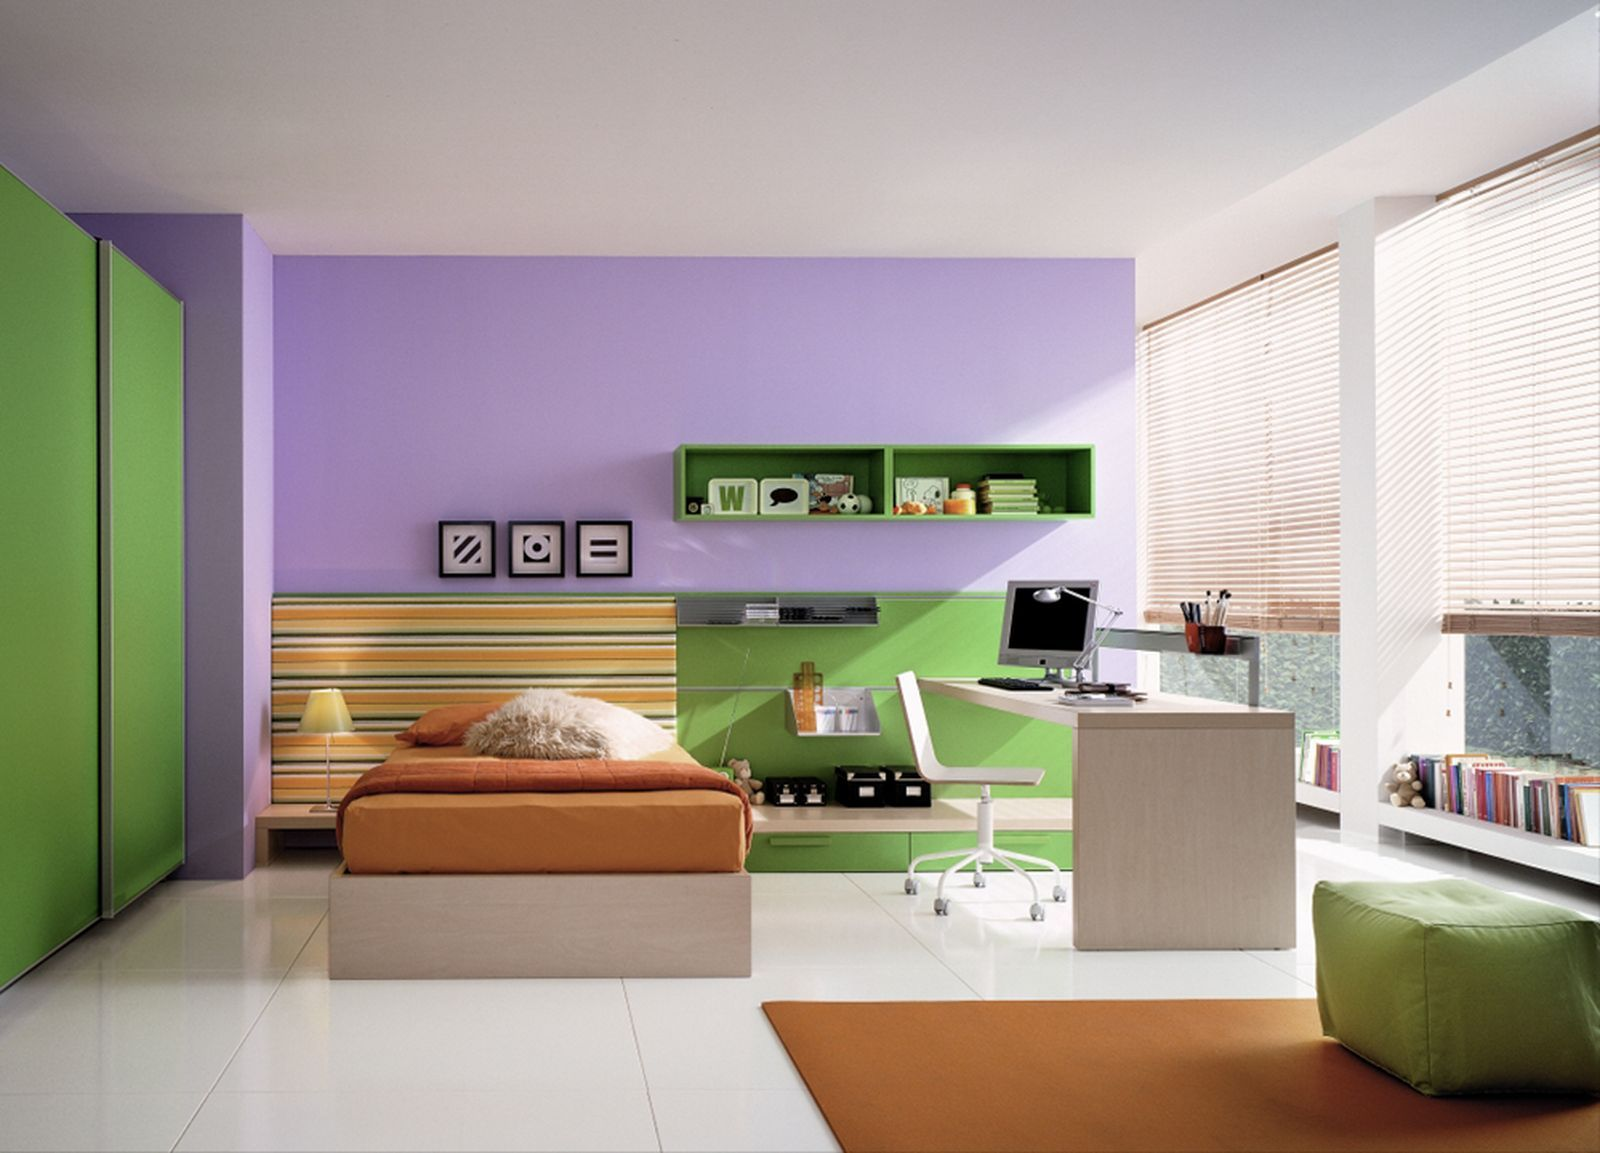 awesome kids bedroom decorating ideas 28 stylendesignscom - Kids Bedroom Decoration Ideas